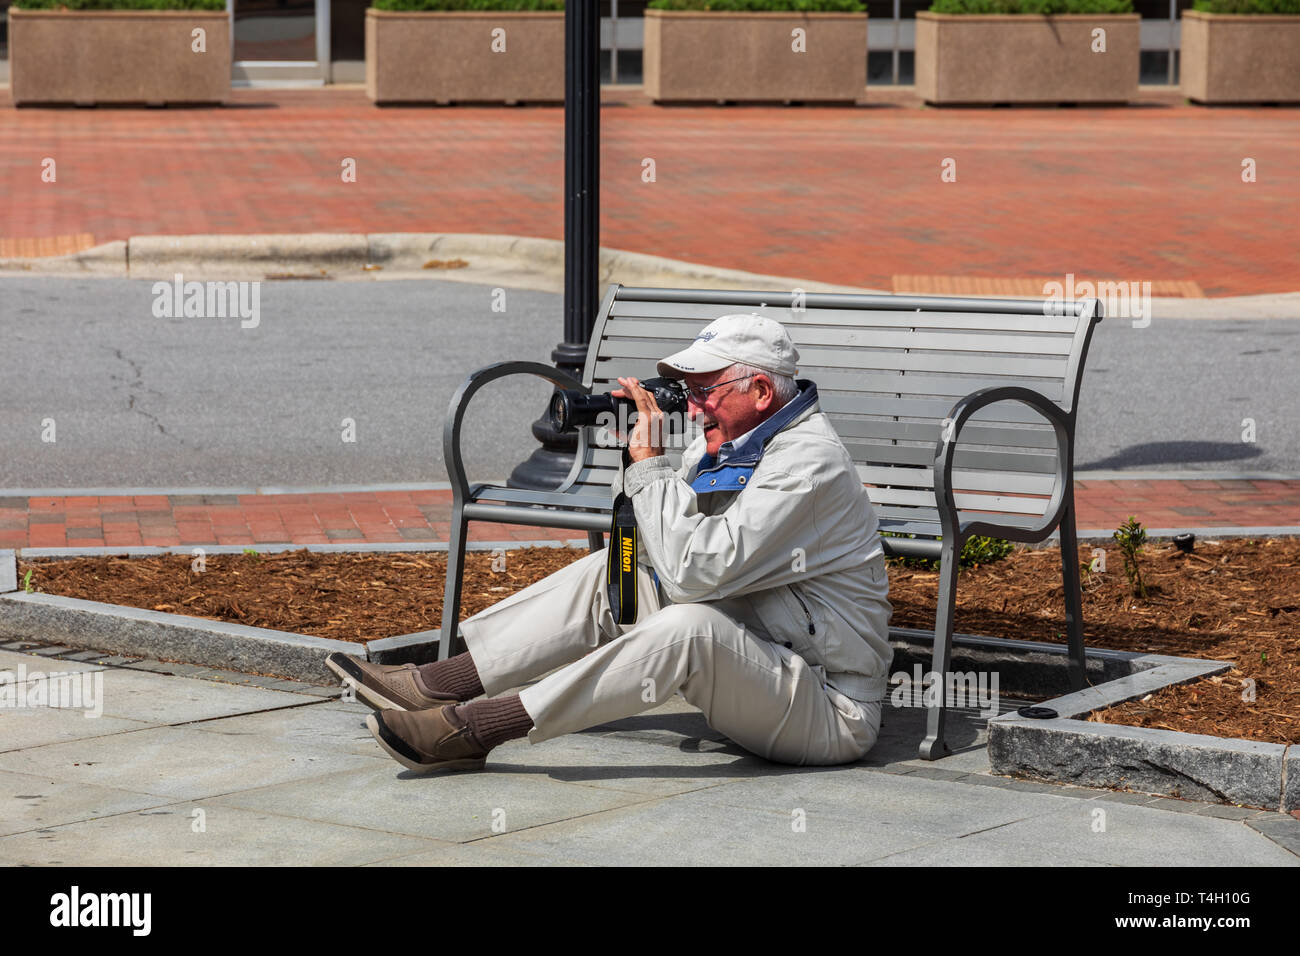 ASHEVILLE, NC, USA-4/11/19:  A senior man sitting on the ground in front of a bench taking pictures with Nikon camera, and smiling. Stock Photo